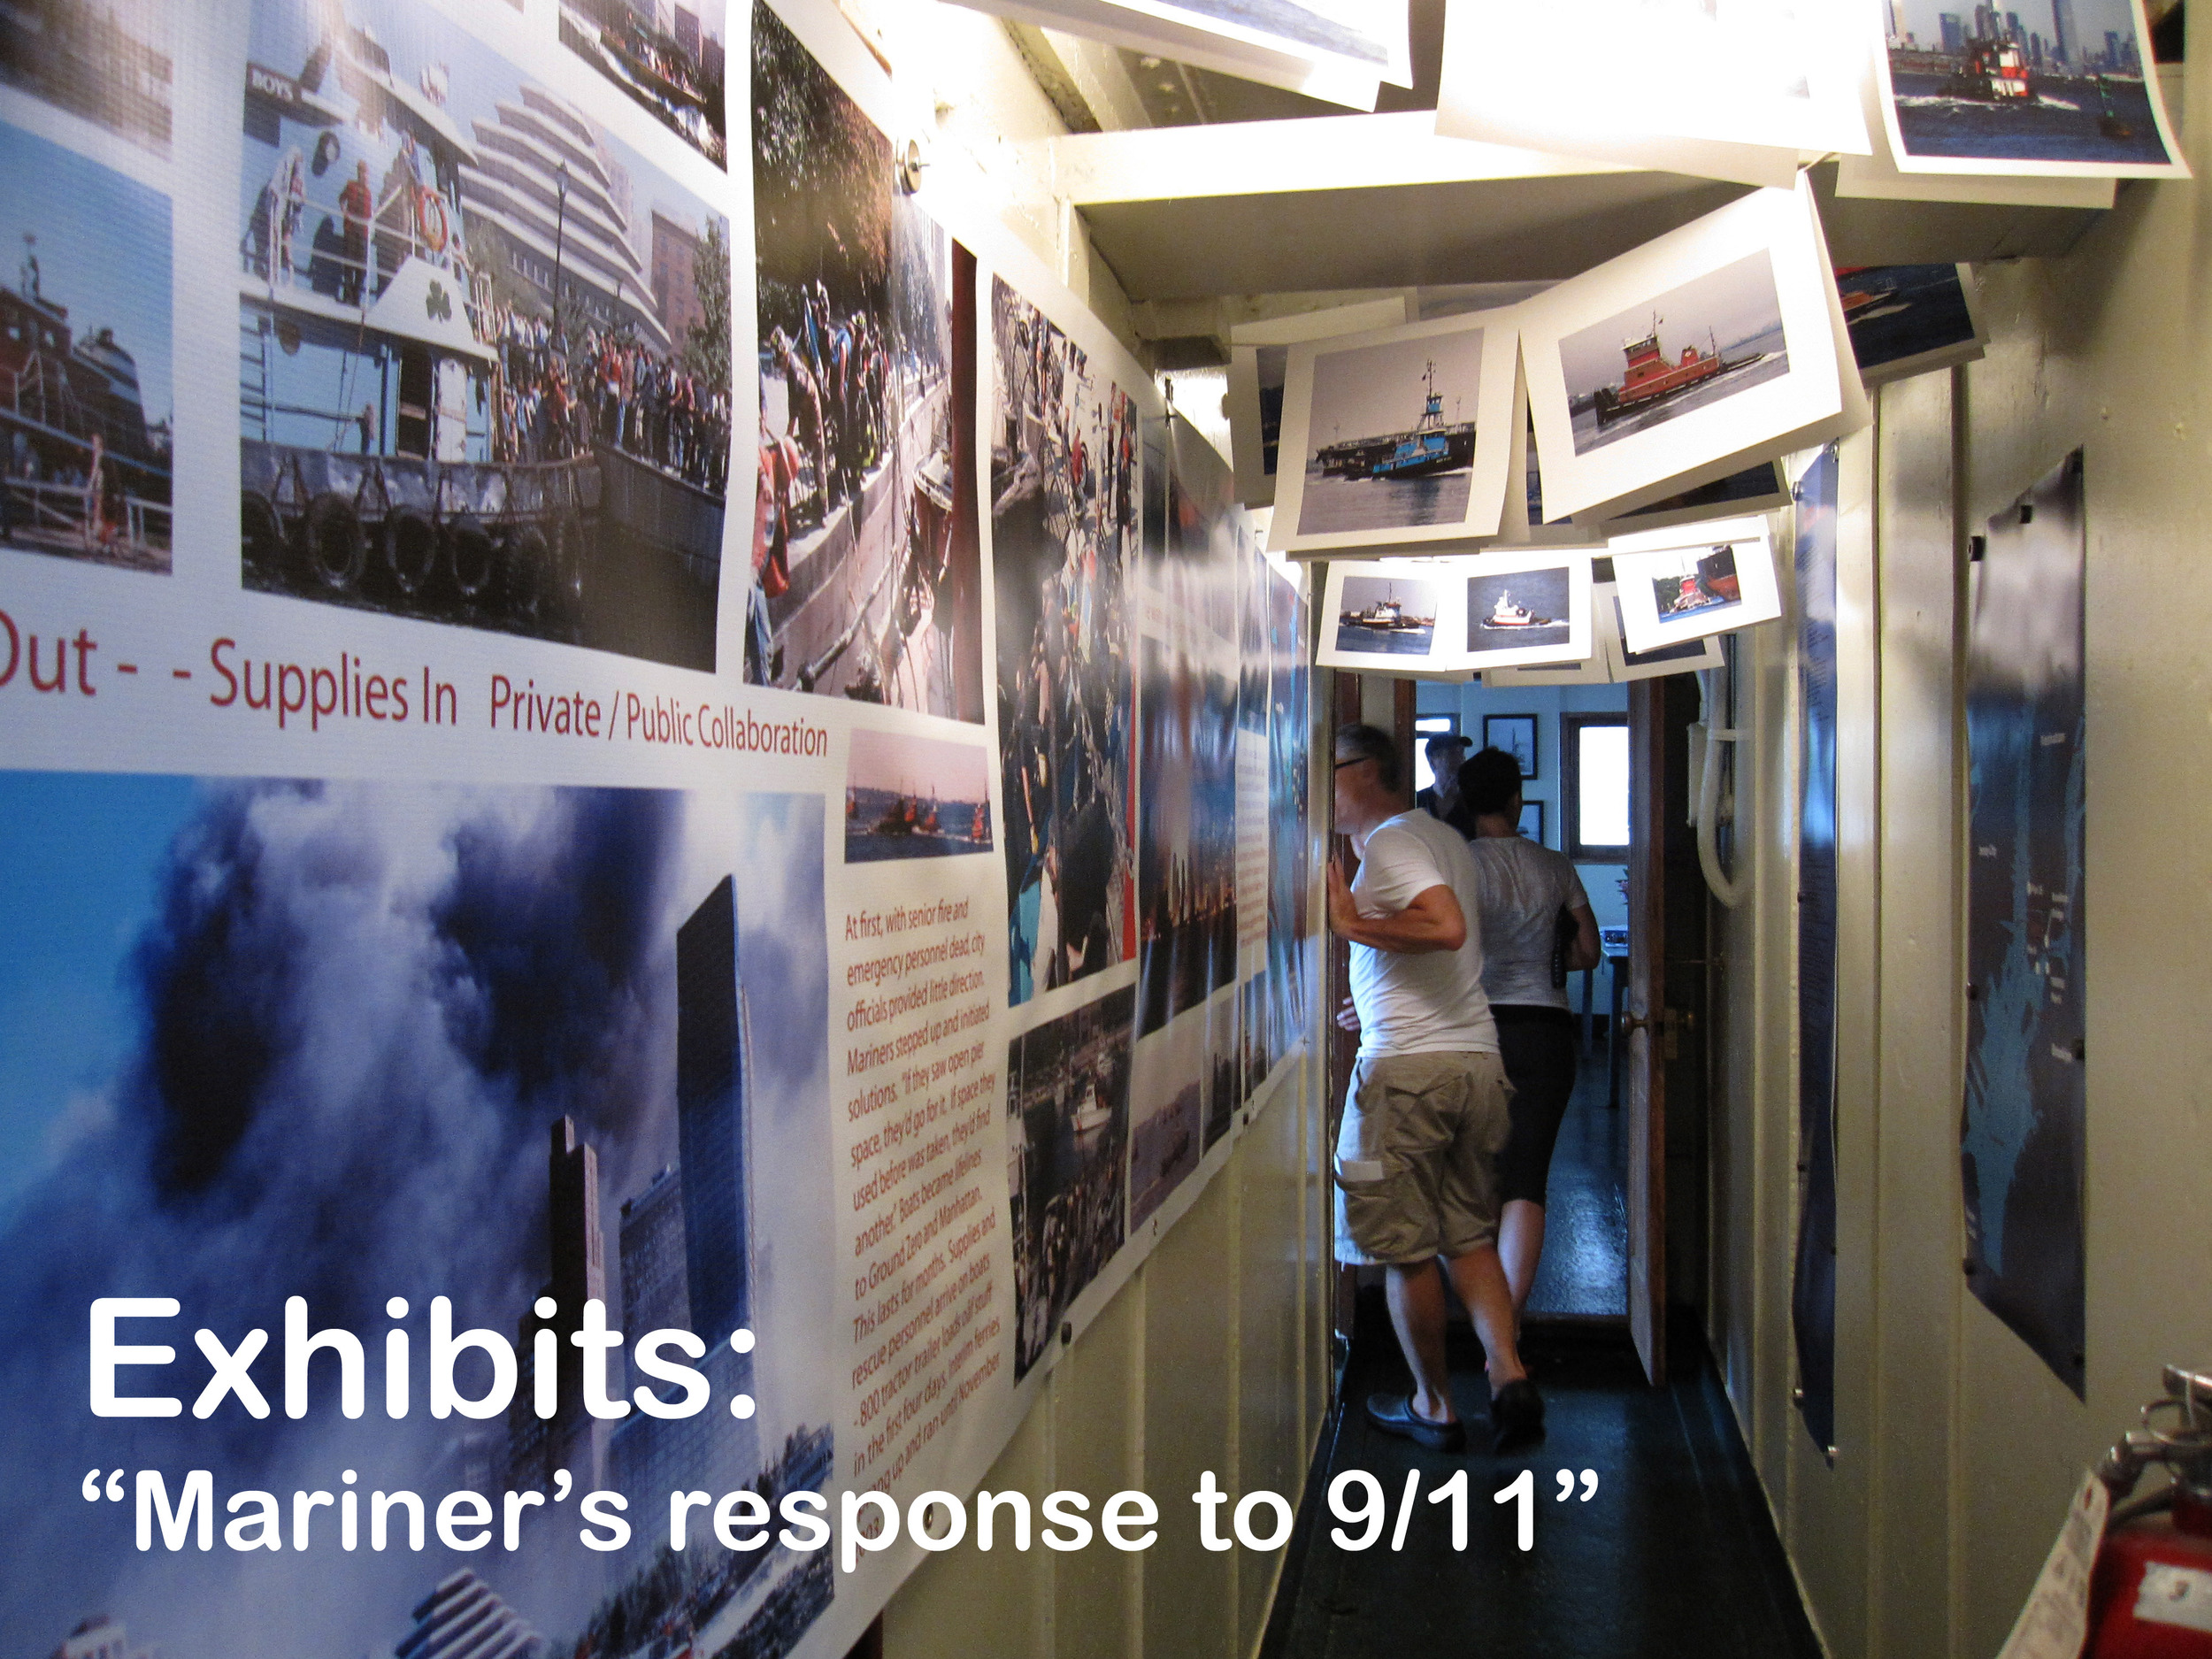 9-11 exhibit Evacuation hallw-caption.jpg